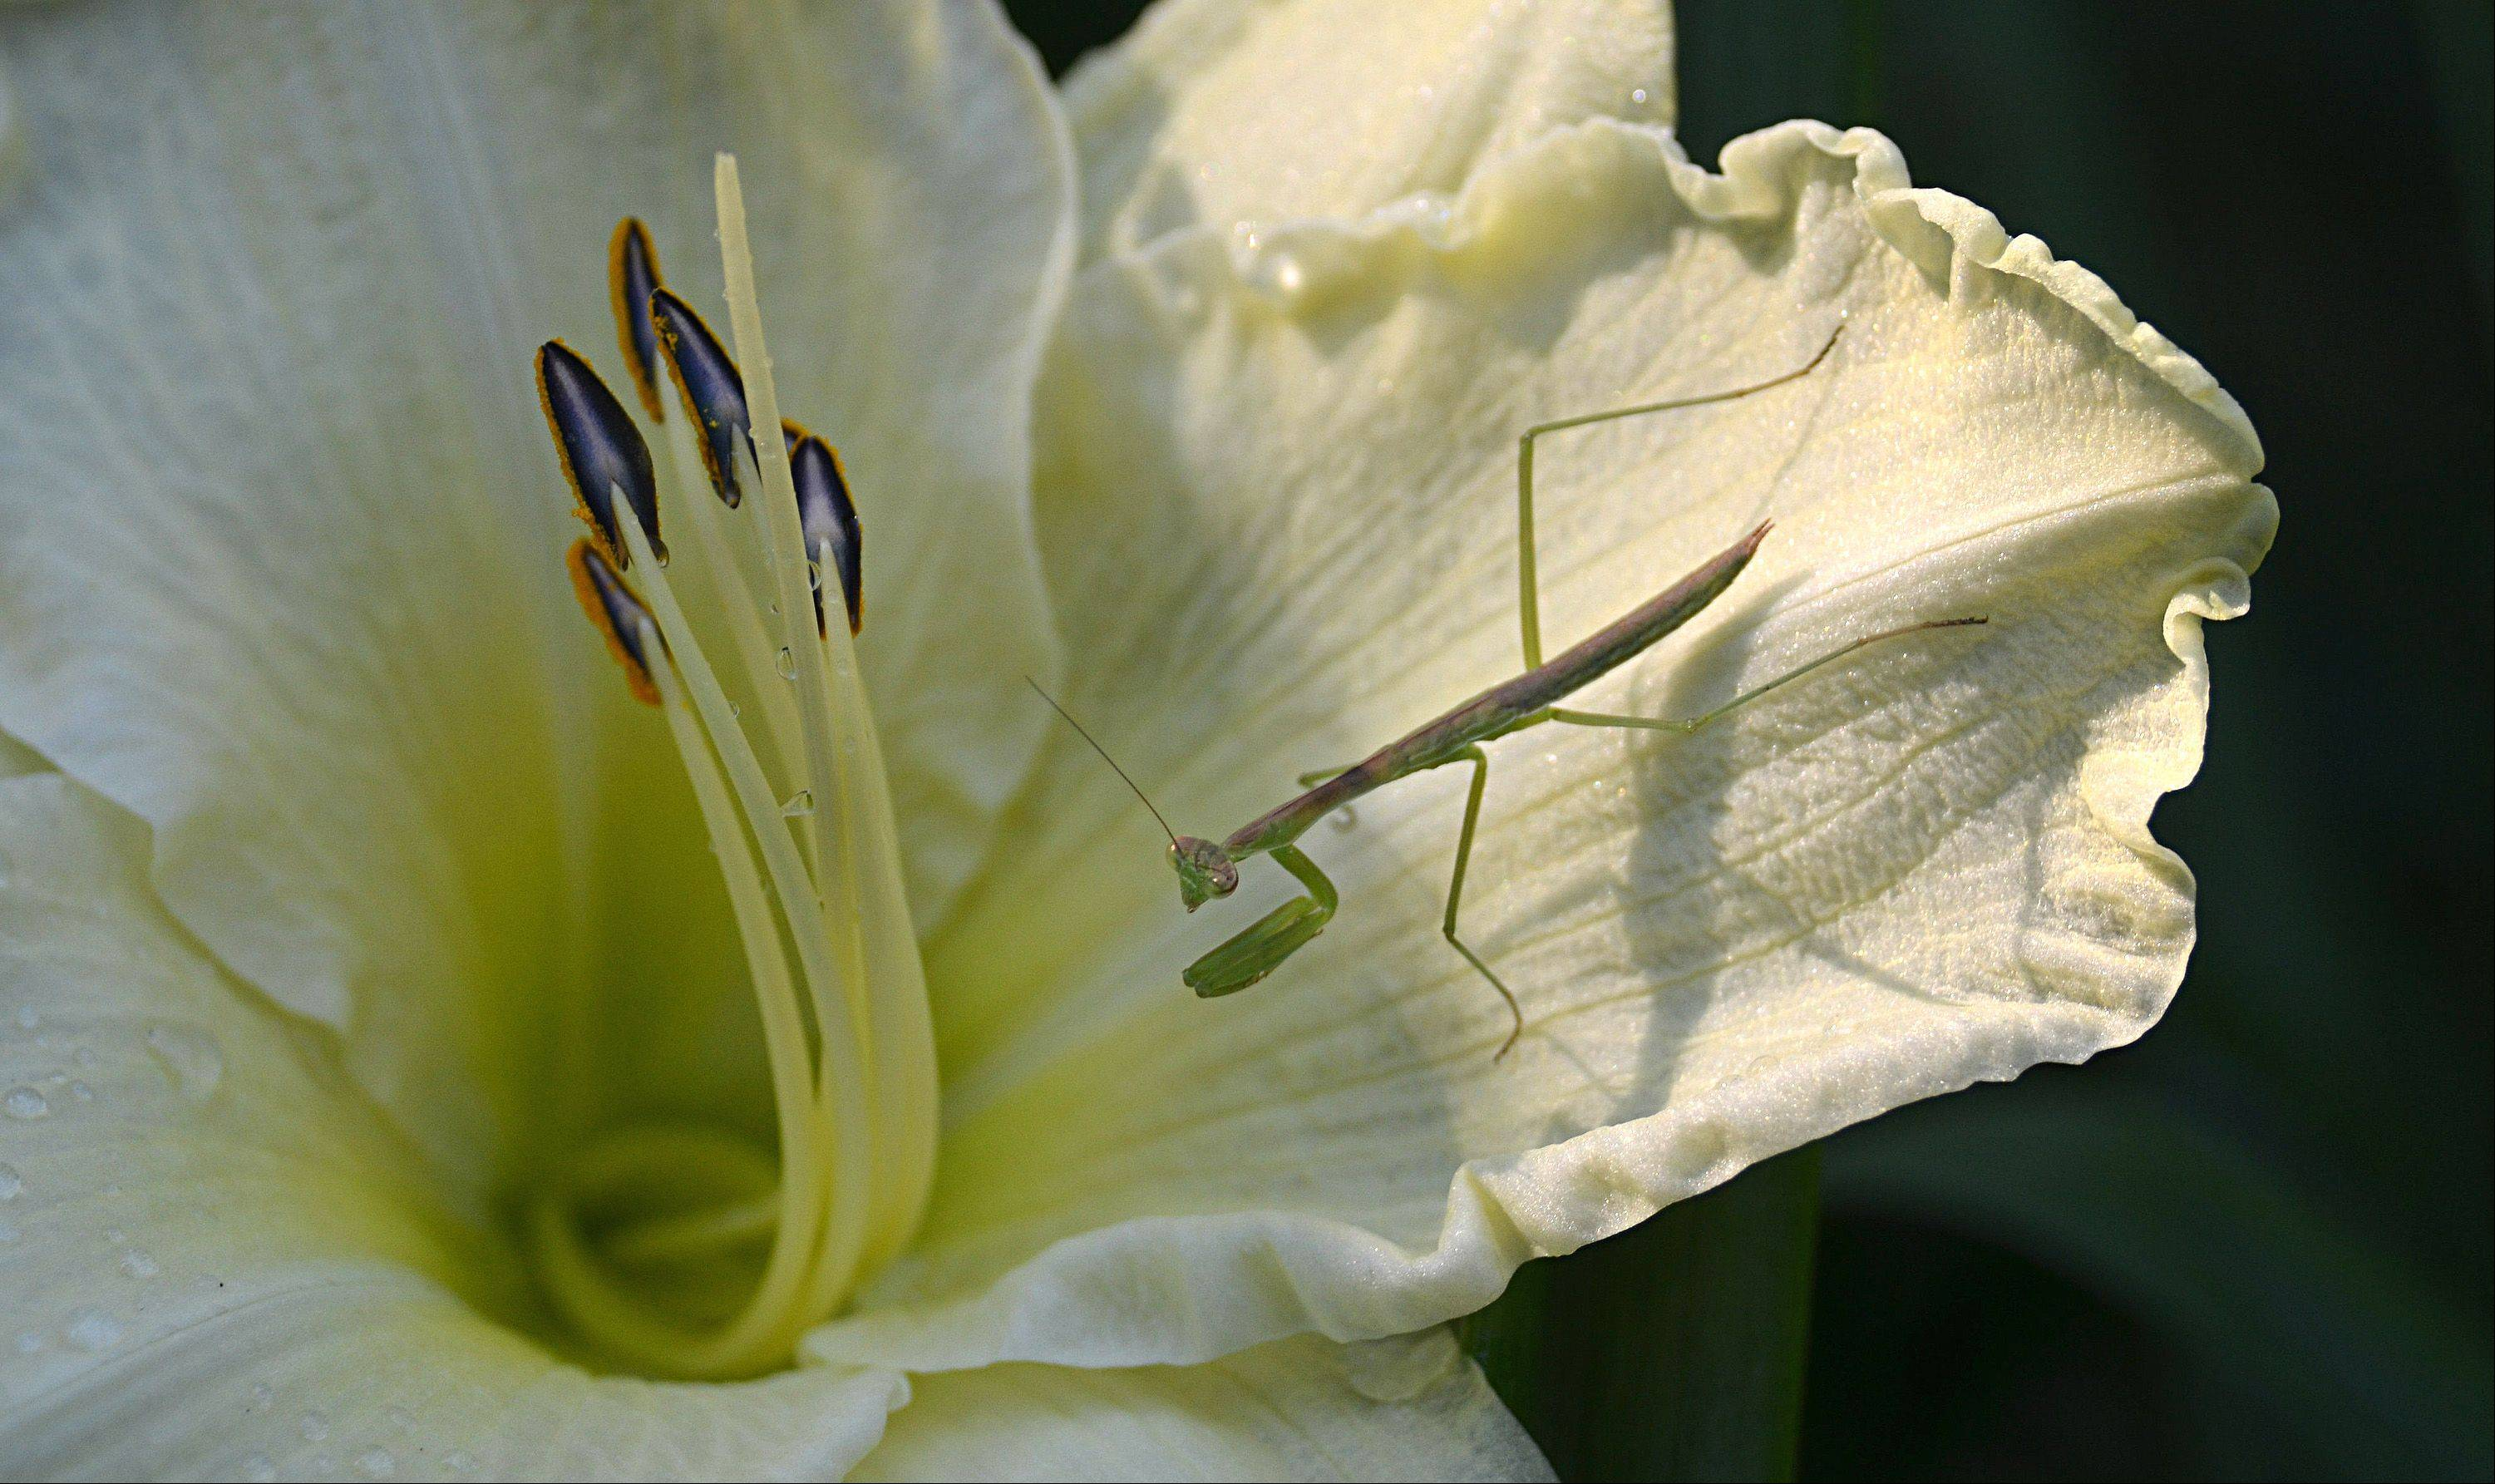 Here is a Praying Mantis perched on a lily in my backyard in Villa Park. This mantis, its siblings, were hatched in a jar in our home from a mantis egg case purchased at Pioneer Feed Store in Villa Park.